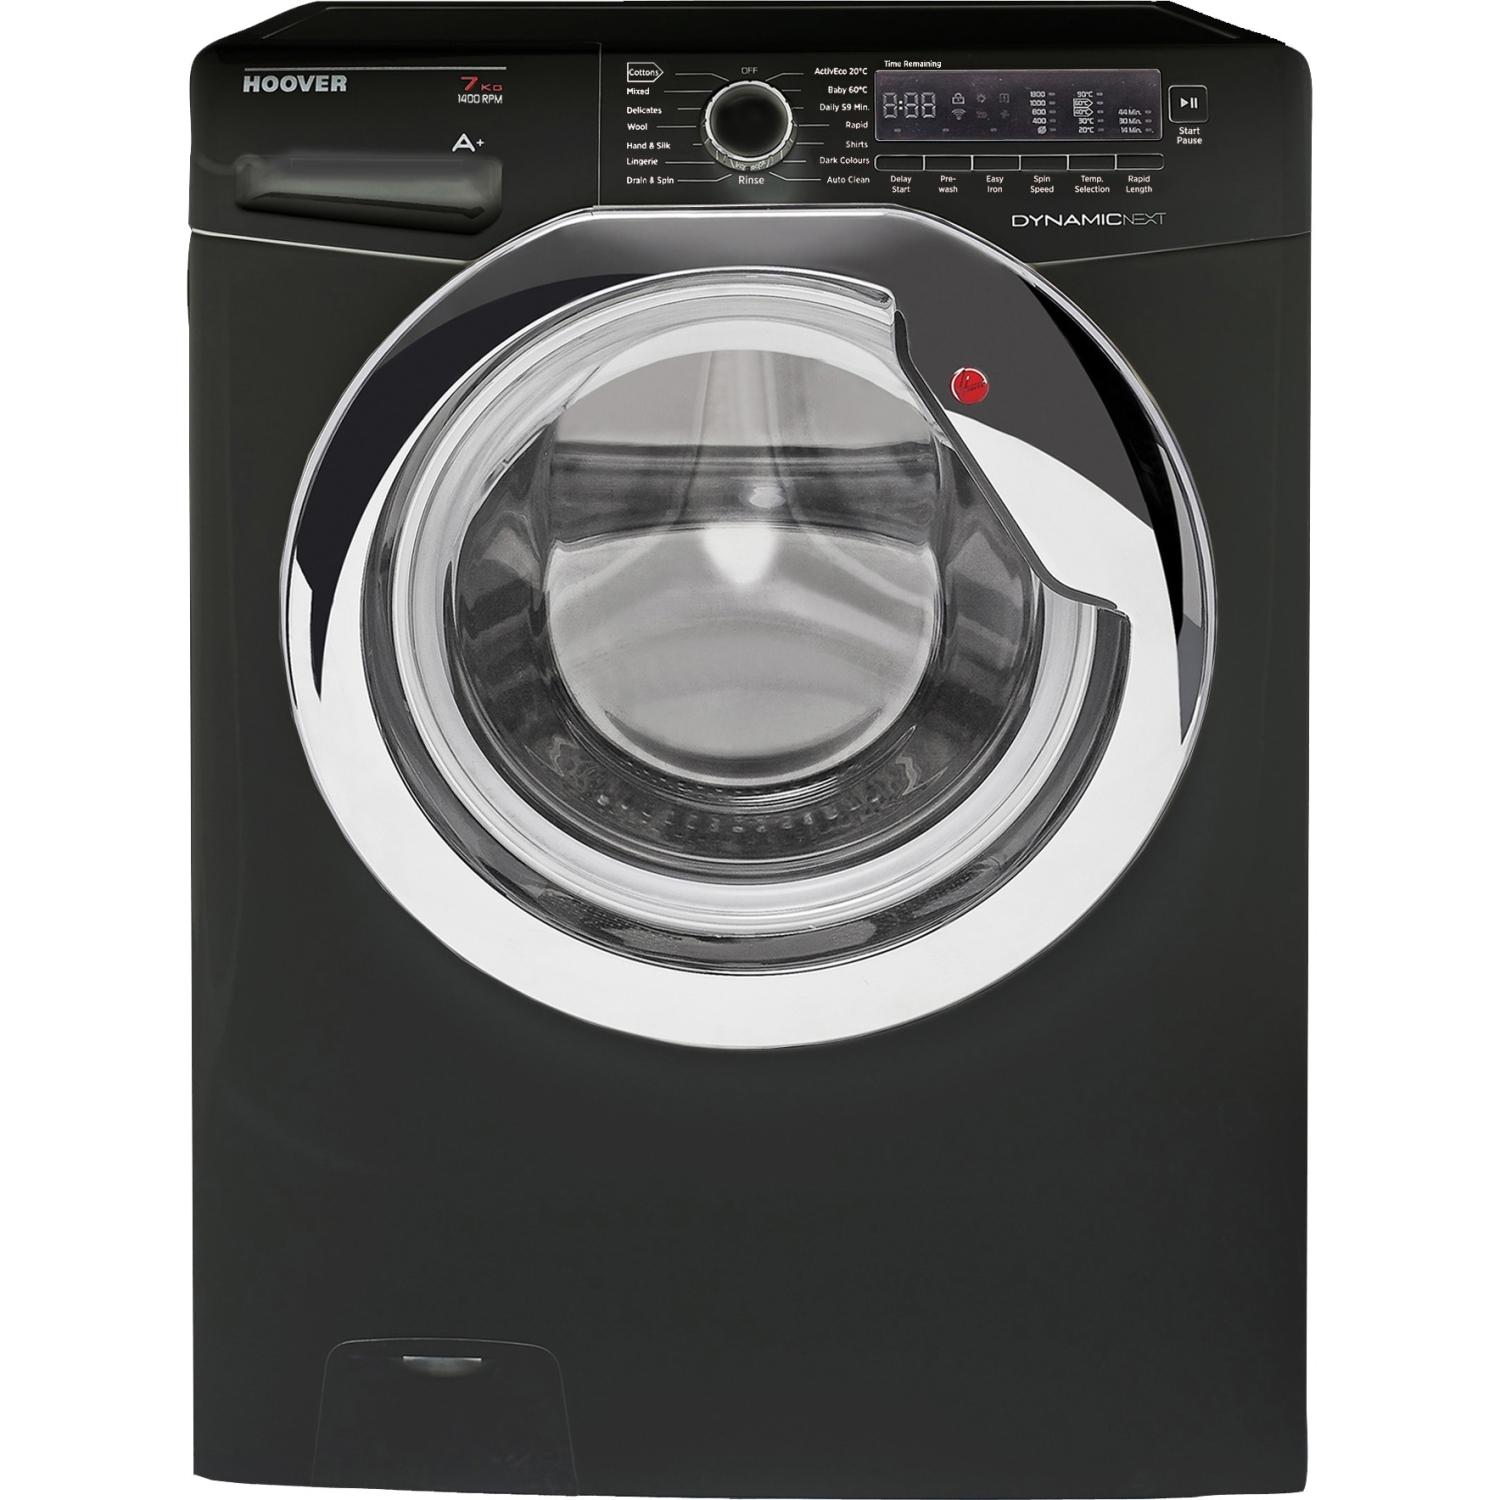 Hoover DXC4C47B1 Washing Machine - Black